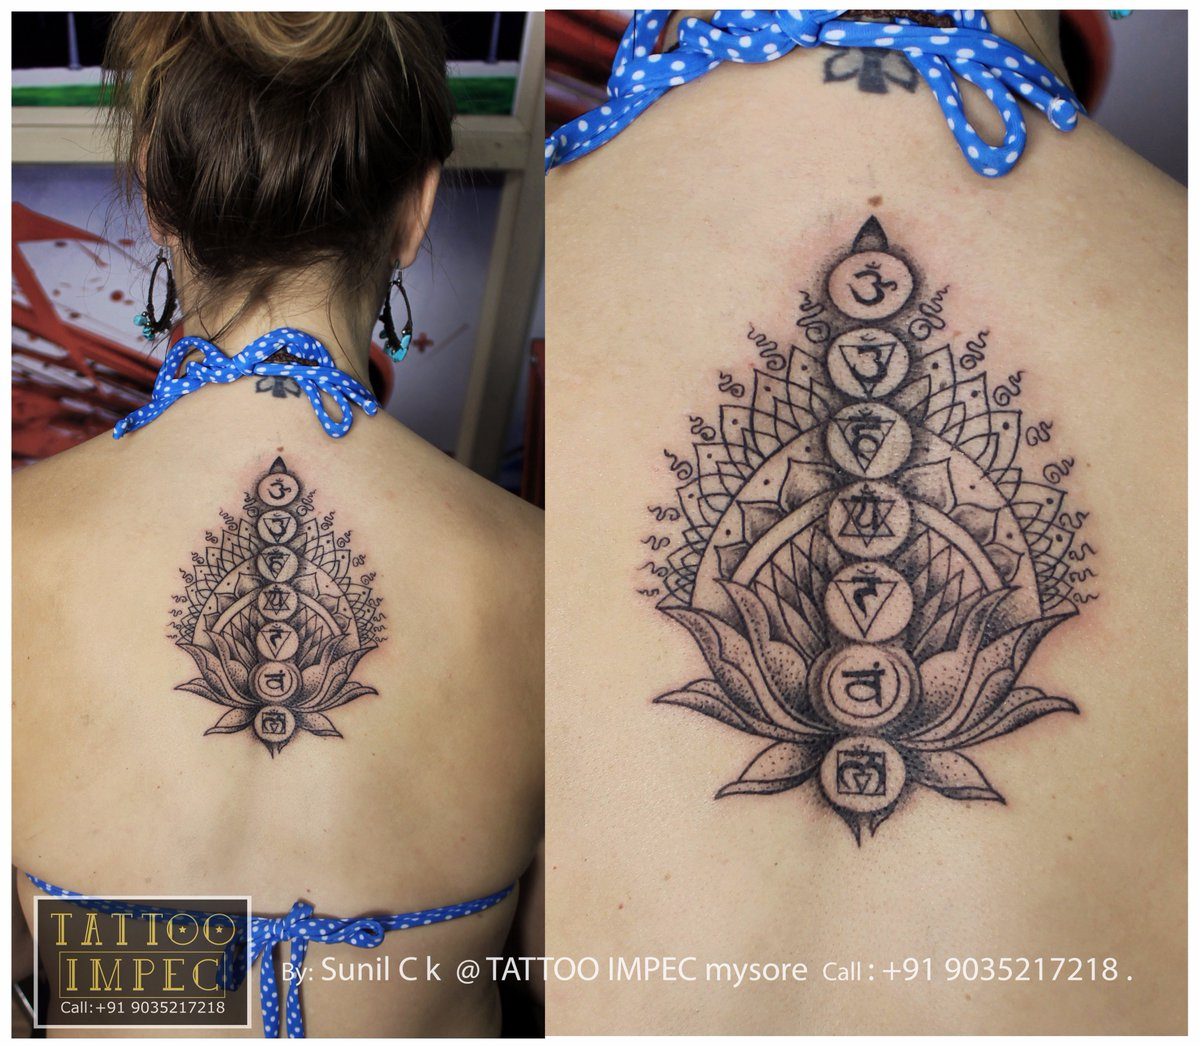 TATTOO IMPEC -Mysore on Twitter: